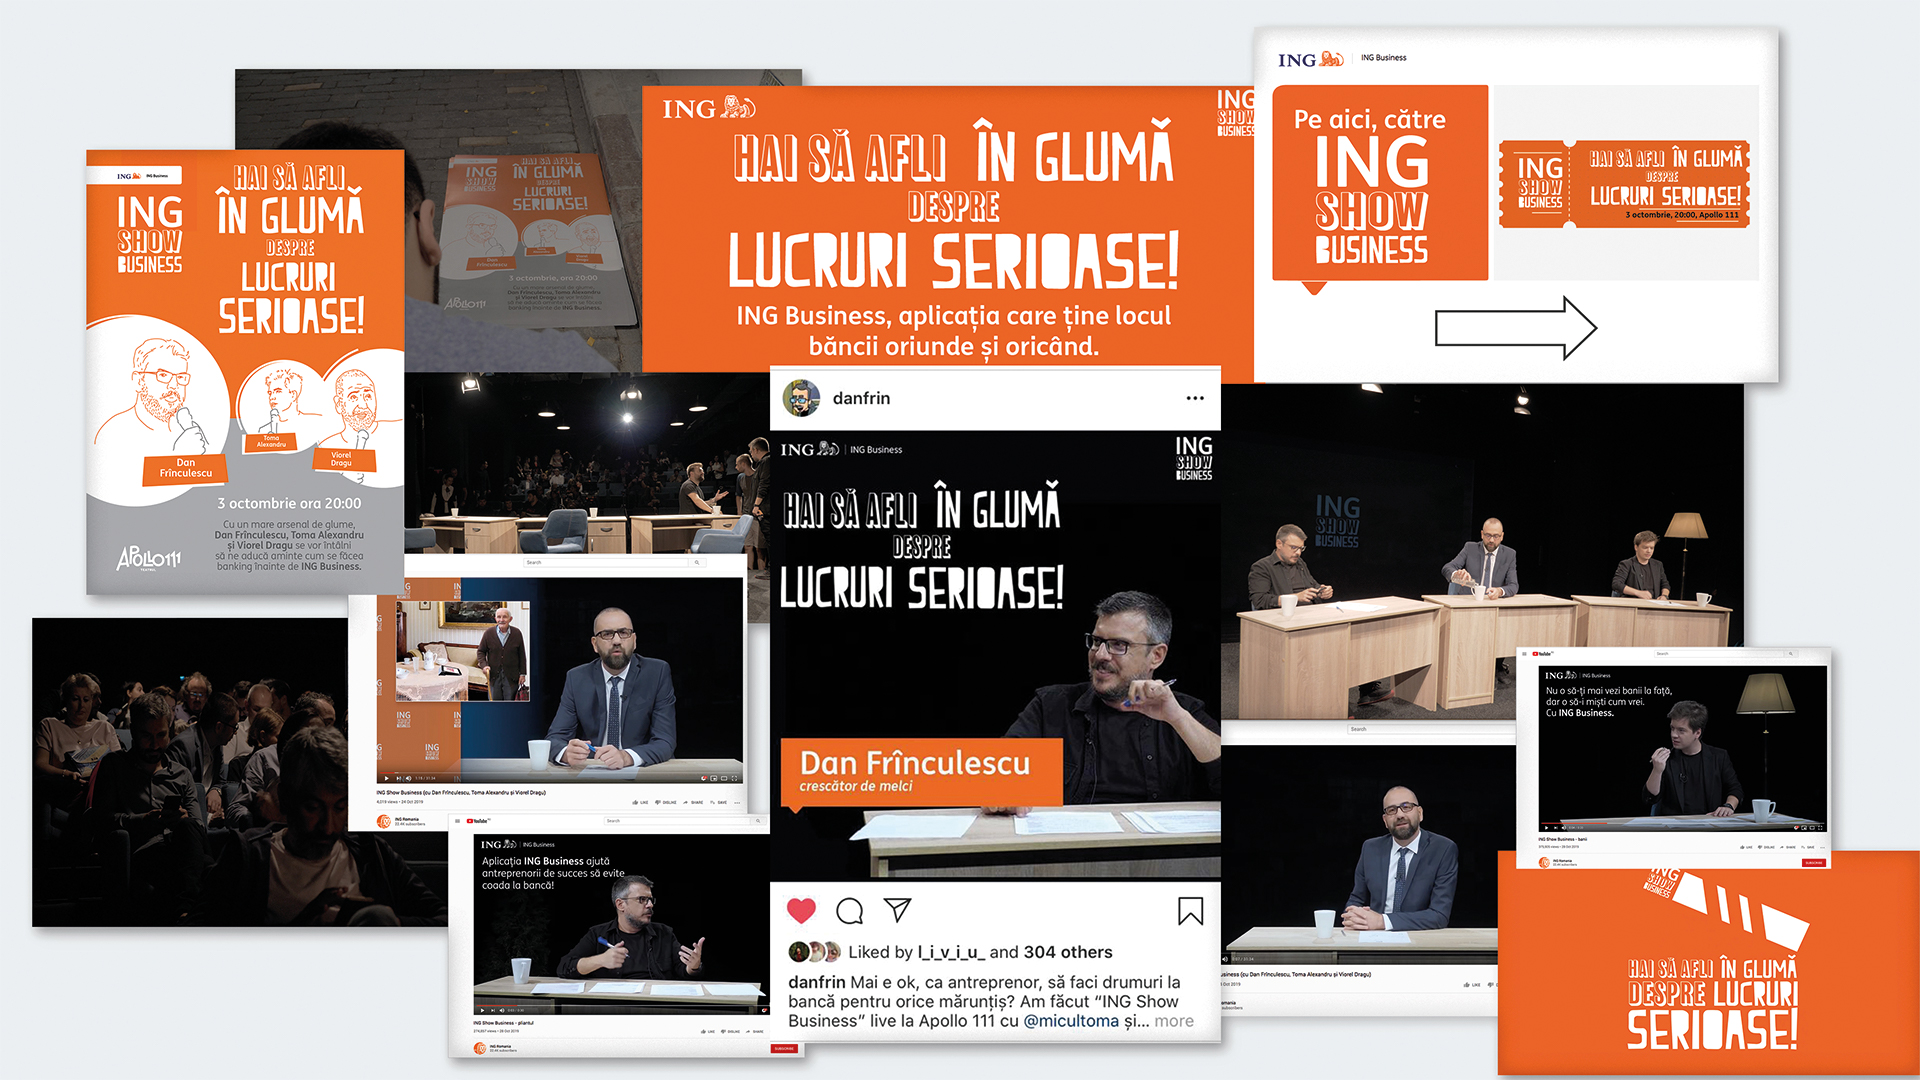 Our freshest communication campaign for ING Business